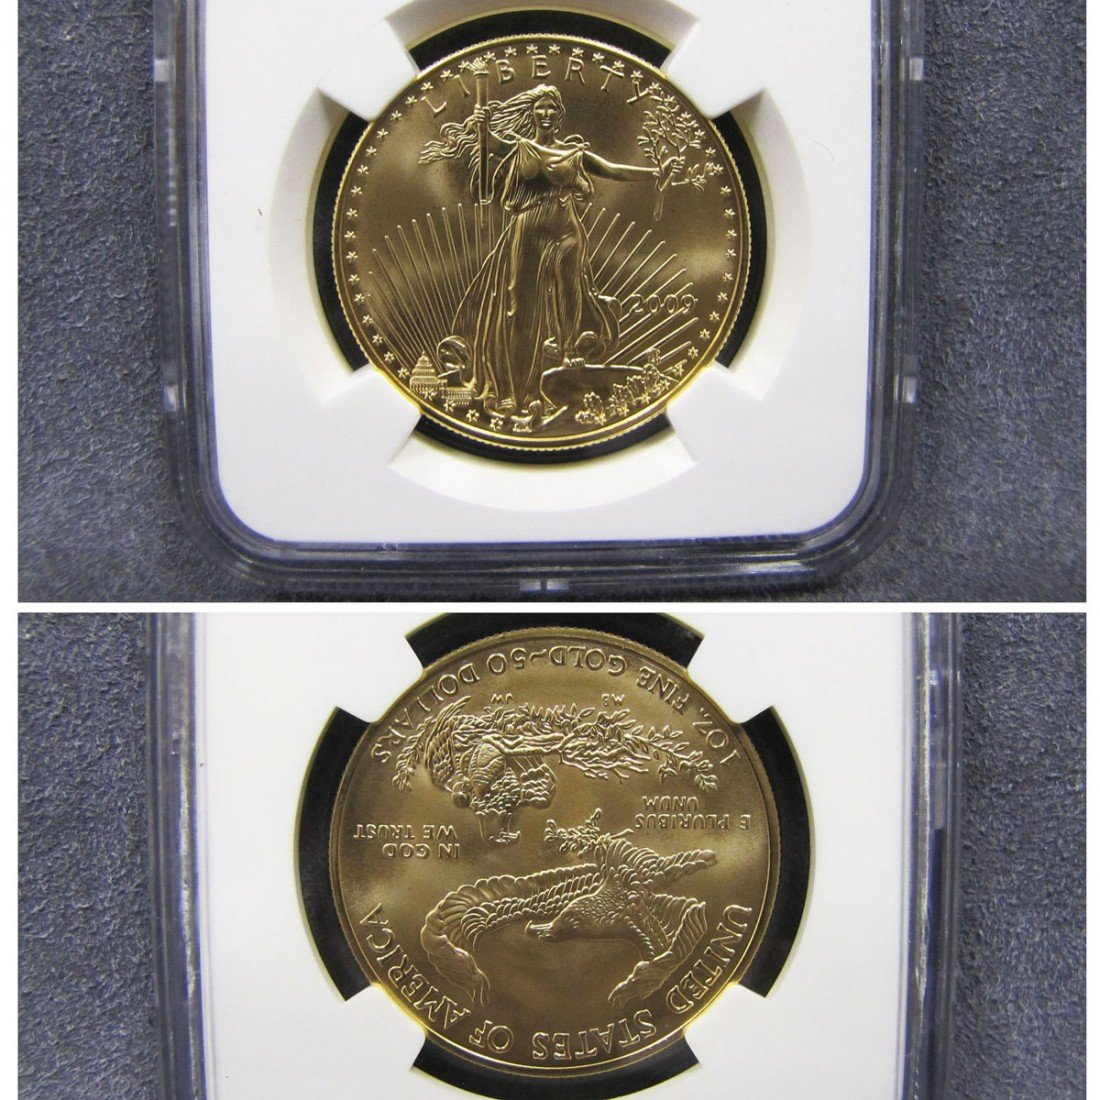 9: 2009 U.S. GOLD $50.00 EAGLE COIN, NGC (MS 70)